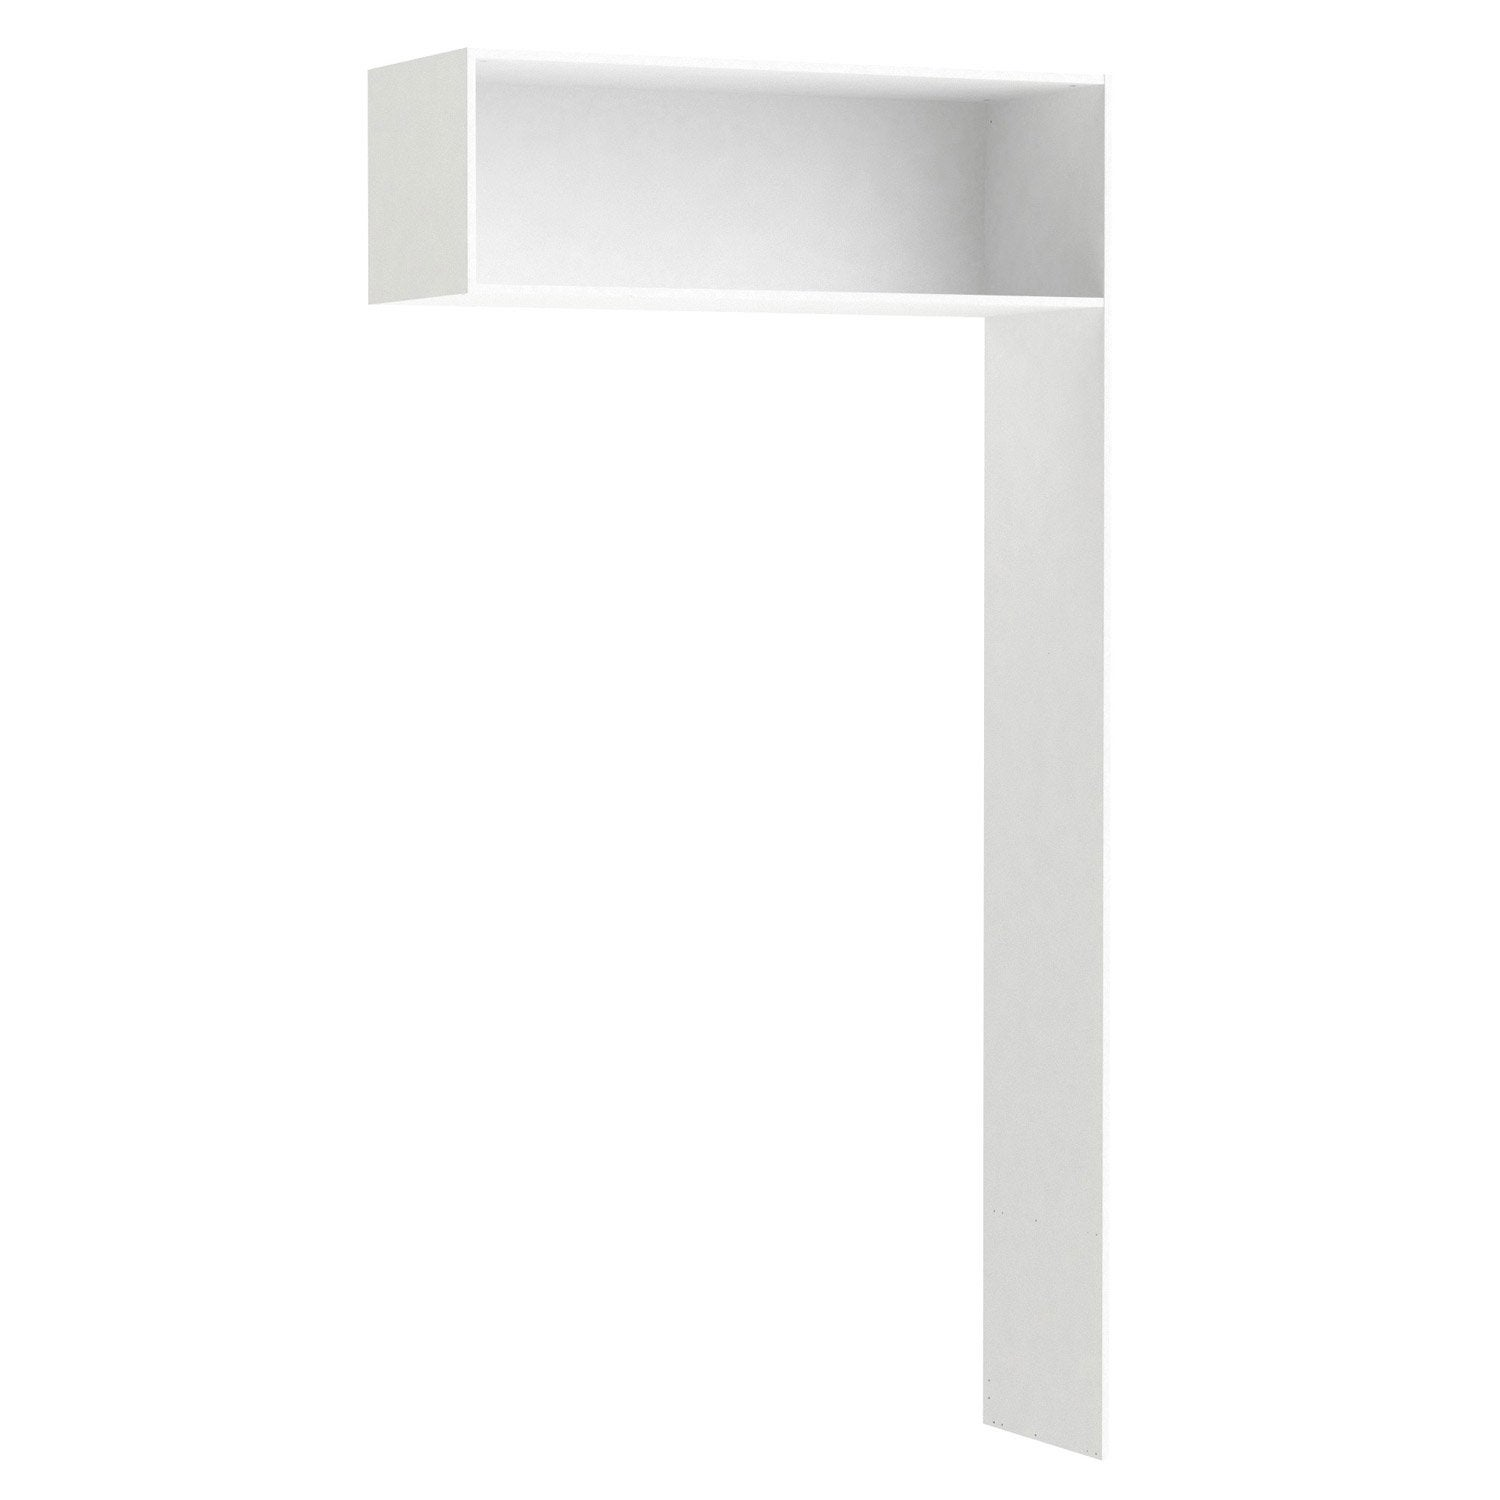 Penderie extensible SPACEO Home 240 x 120 x 45 cm, blanc | Leroy Merlin